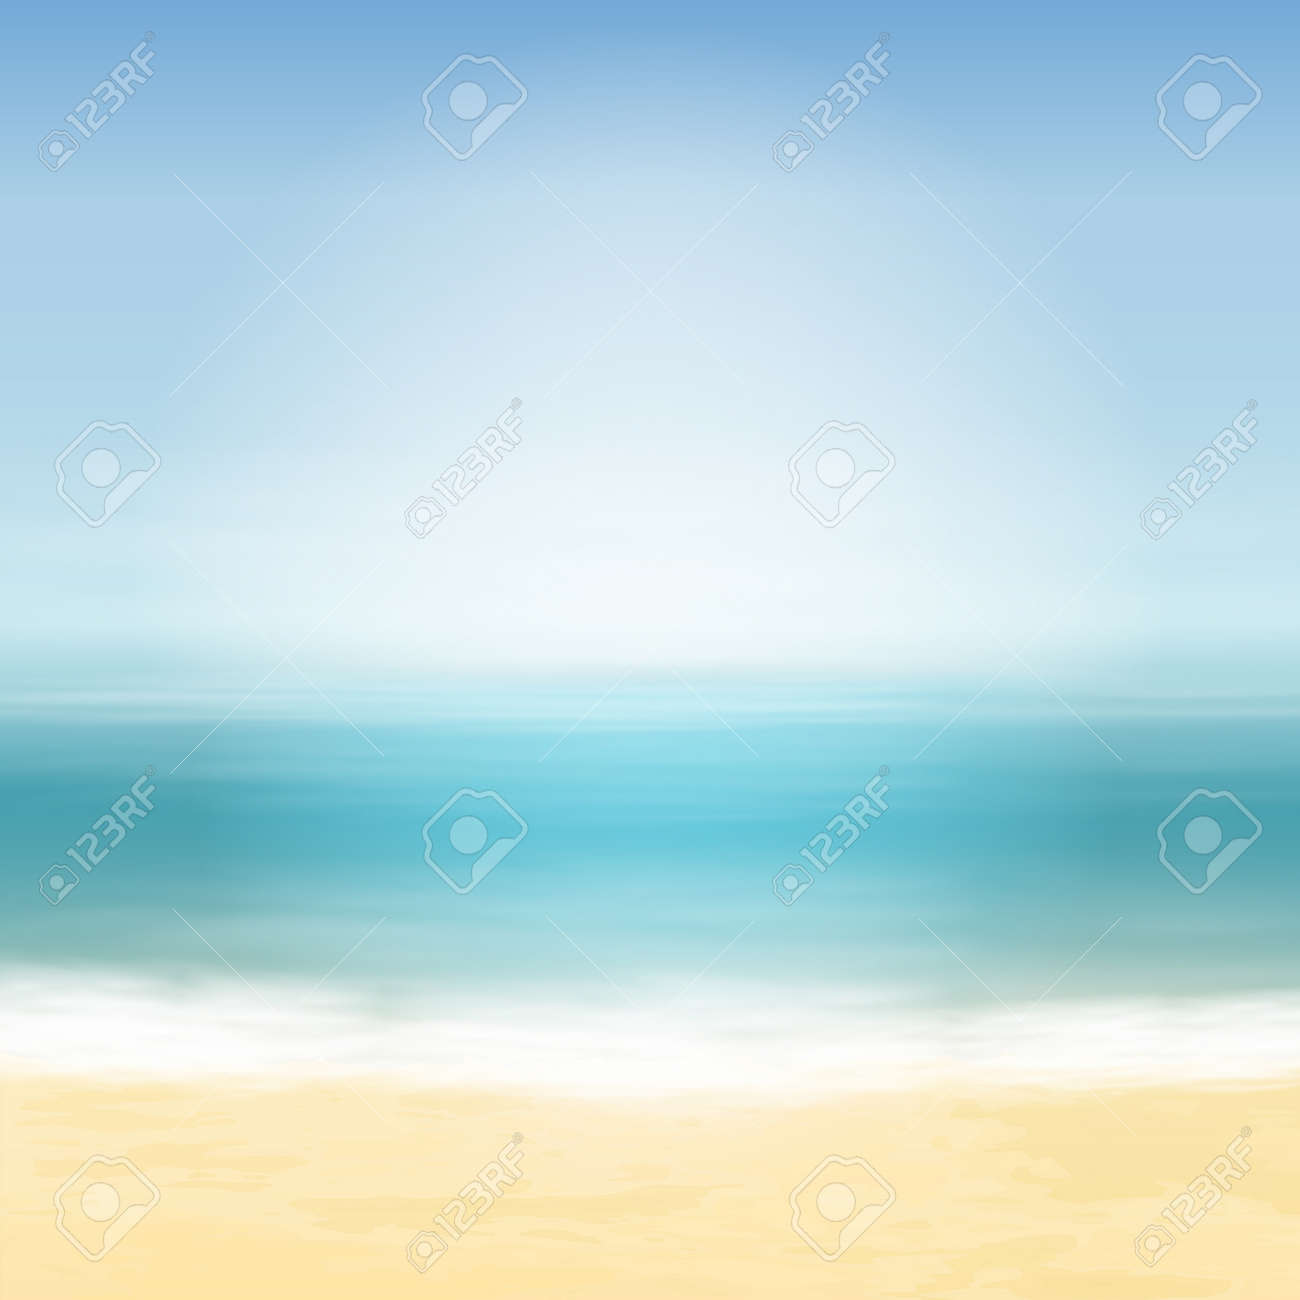 Beach and blue sea. Tropical background. EPS10 vector. - 35819319